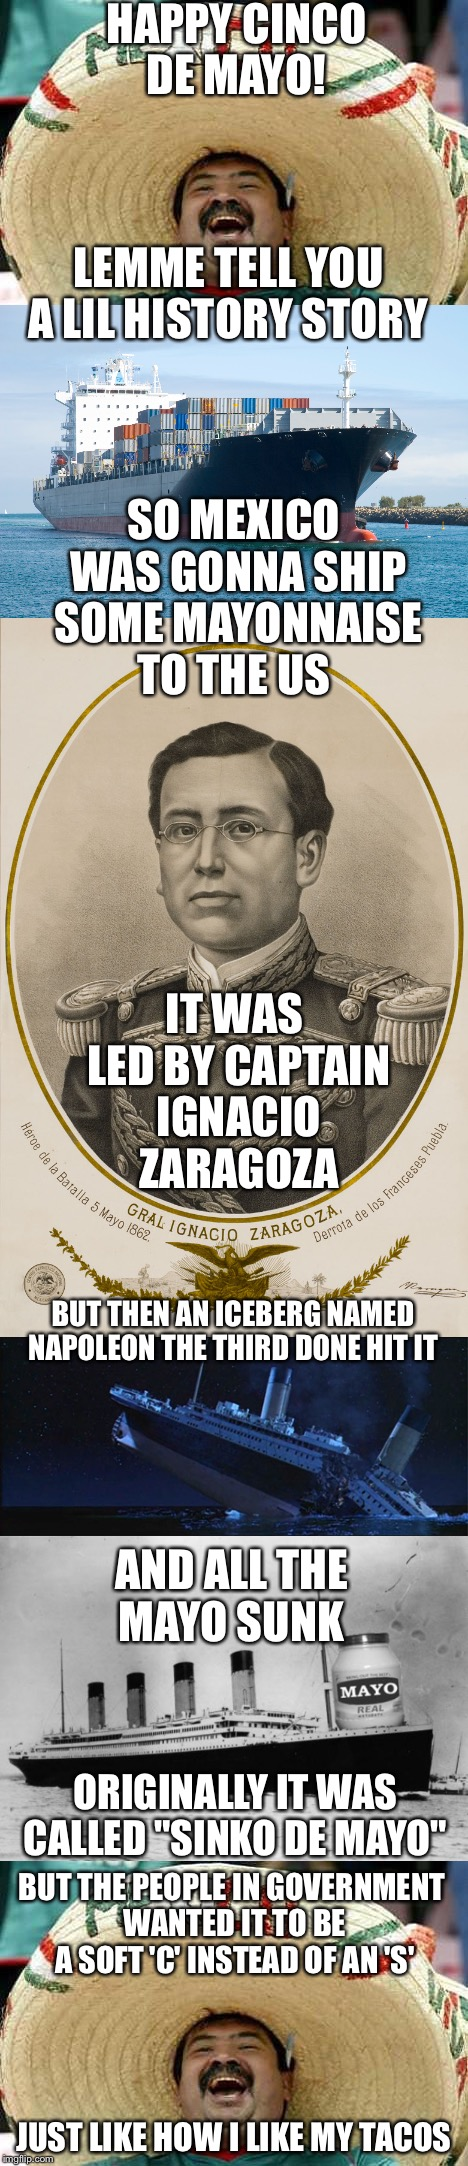 Soft Tacos & Cinco De Mayo | HAPPY CINCO DE MAYO! LEMME TELL YOU A LIL HISTORY STORY SO MEXICO WAS GONNA SHIP SOME MAYONNAISE TO THE US IT WAS LED BY CAPTAIN IGNACIO ZAR | image tagged in memes | made w/ Imgflip meme maker